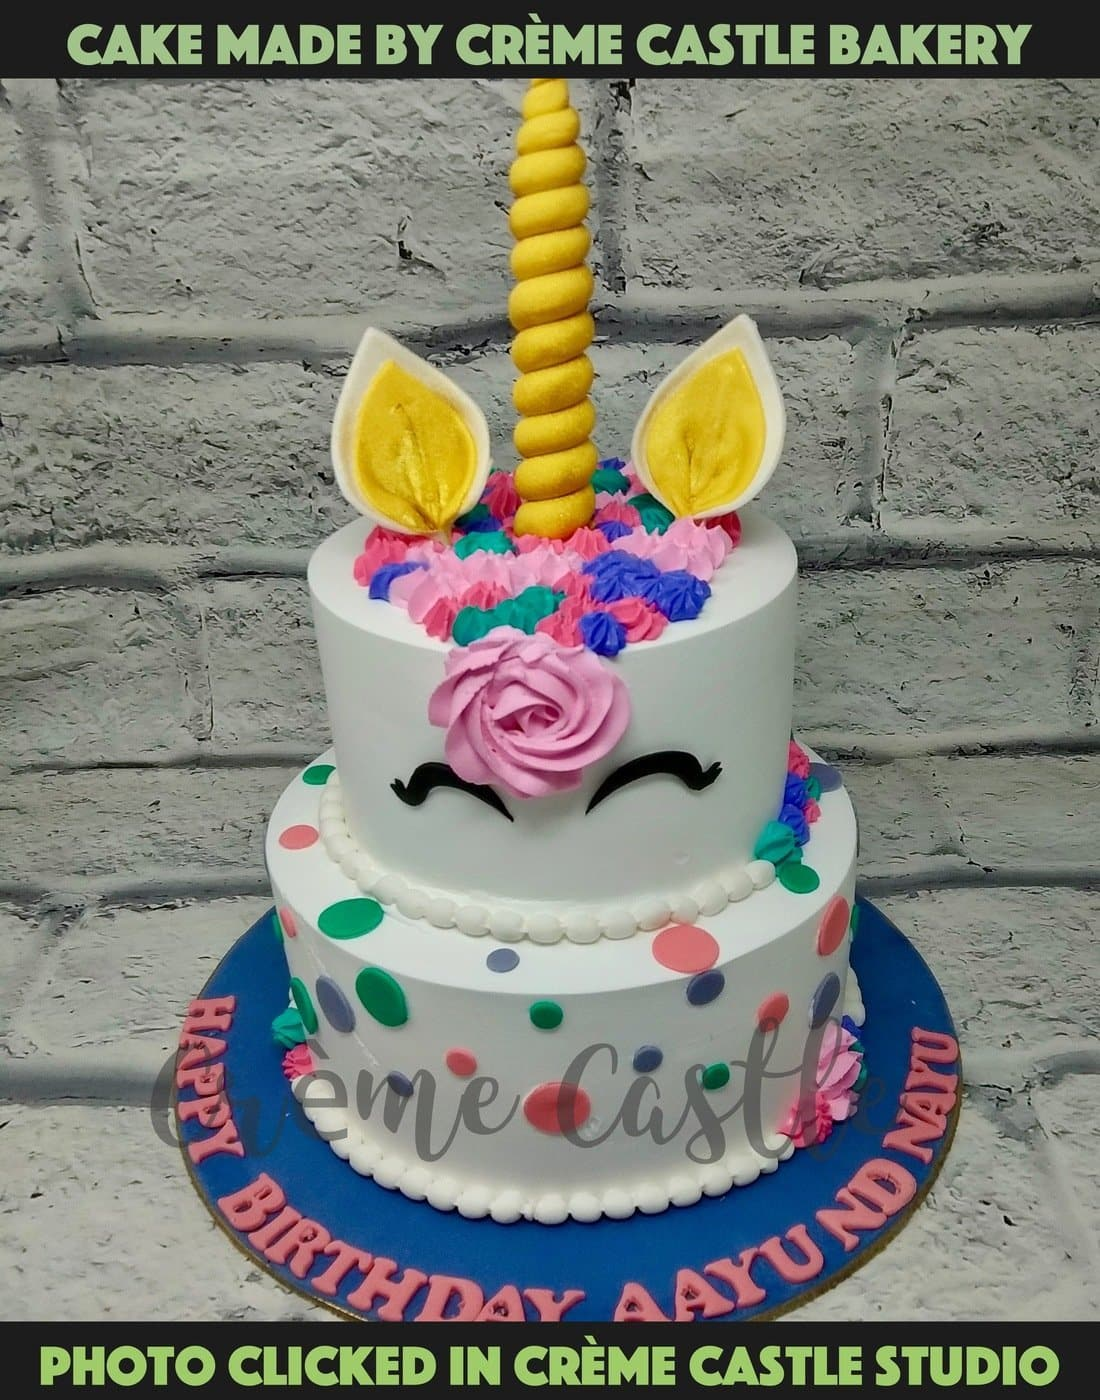 A cream based tier cake with unicorn theme on top and the bottom